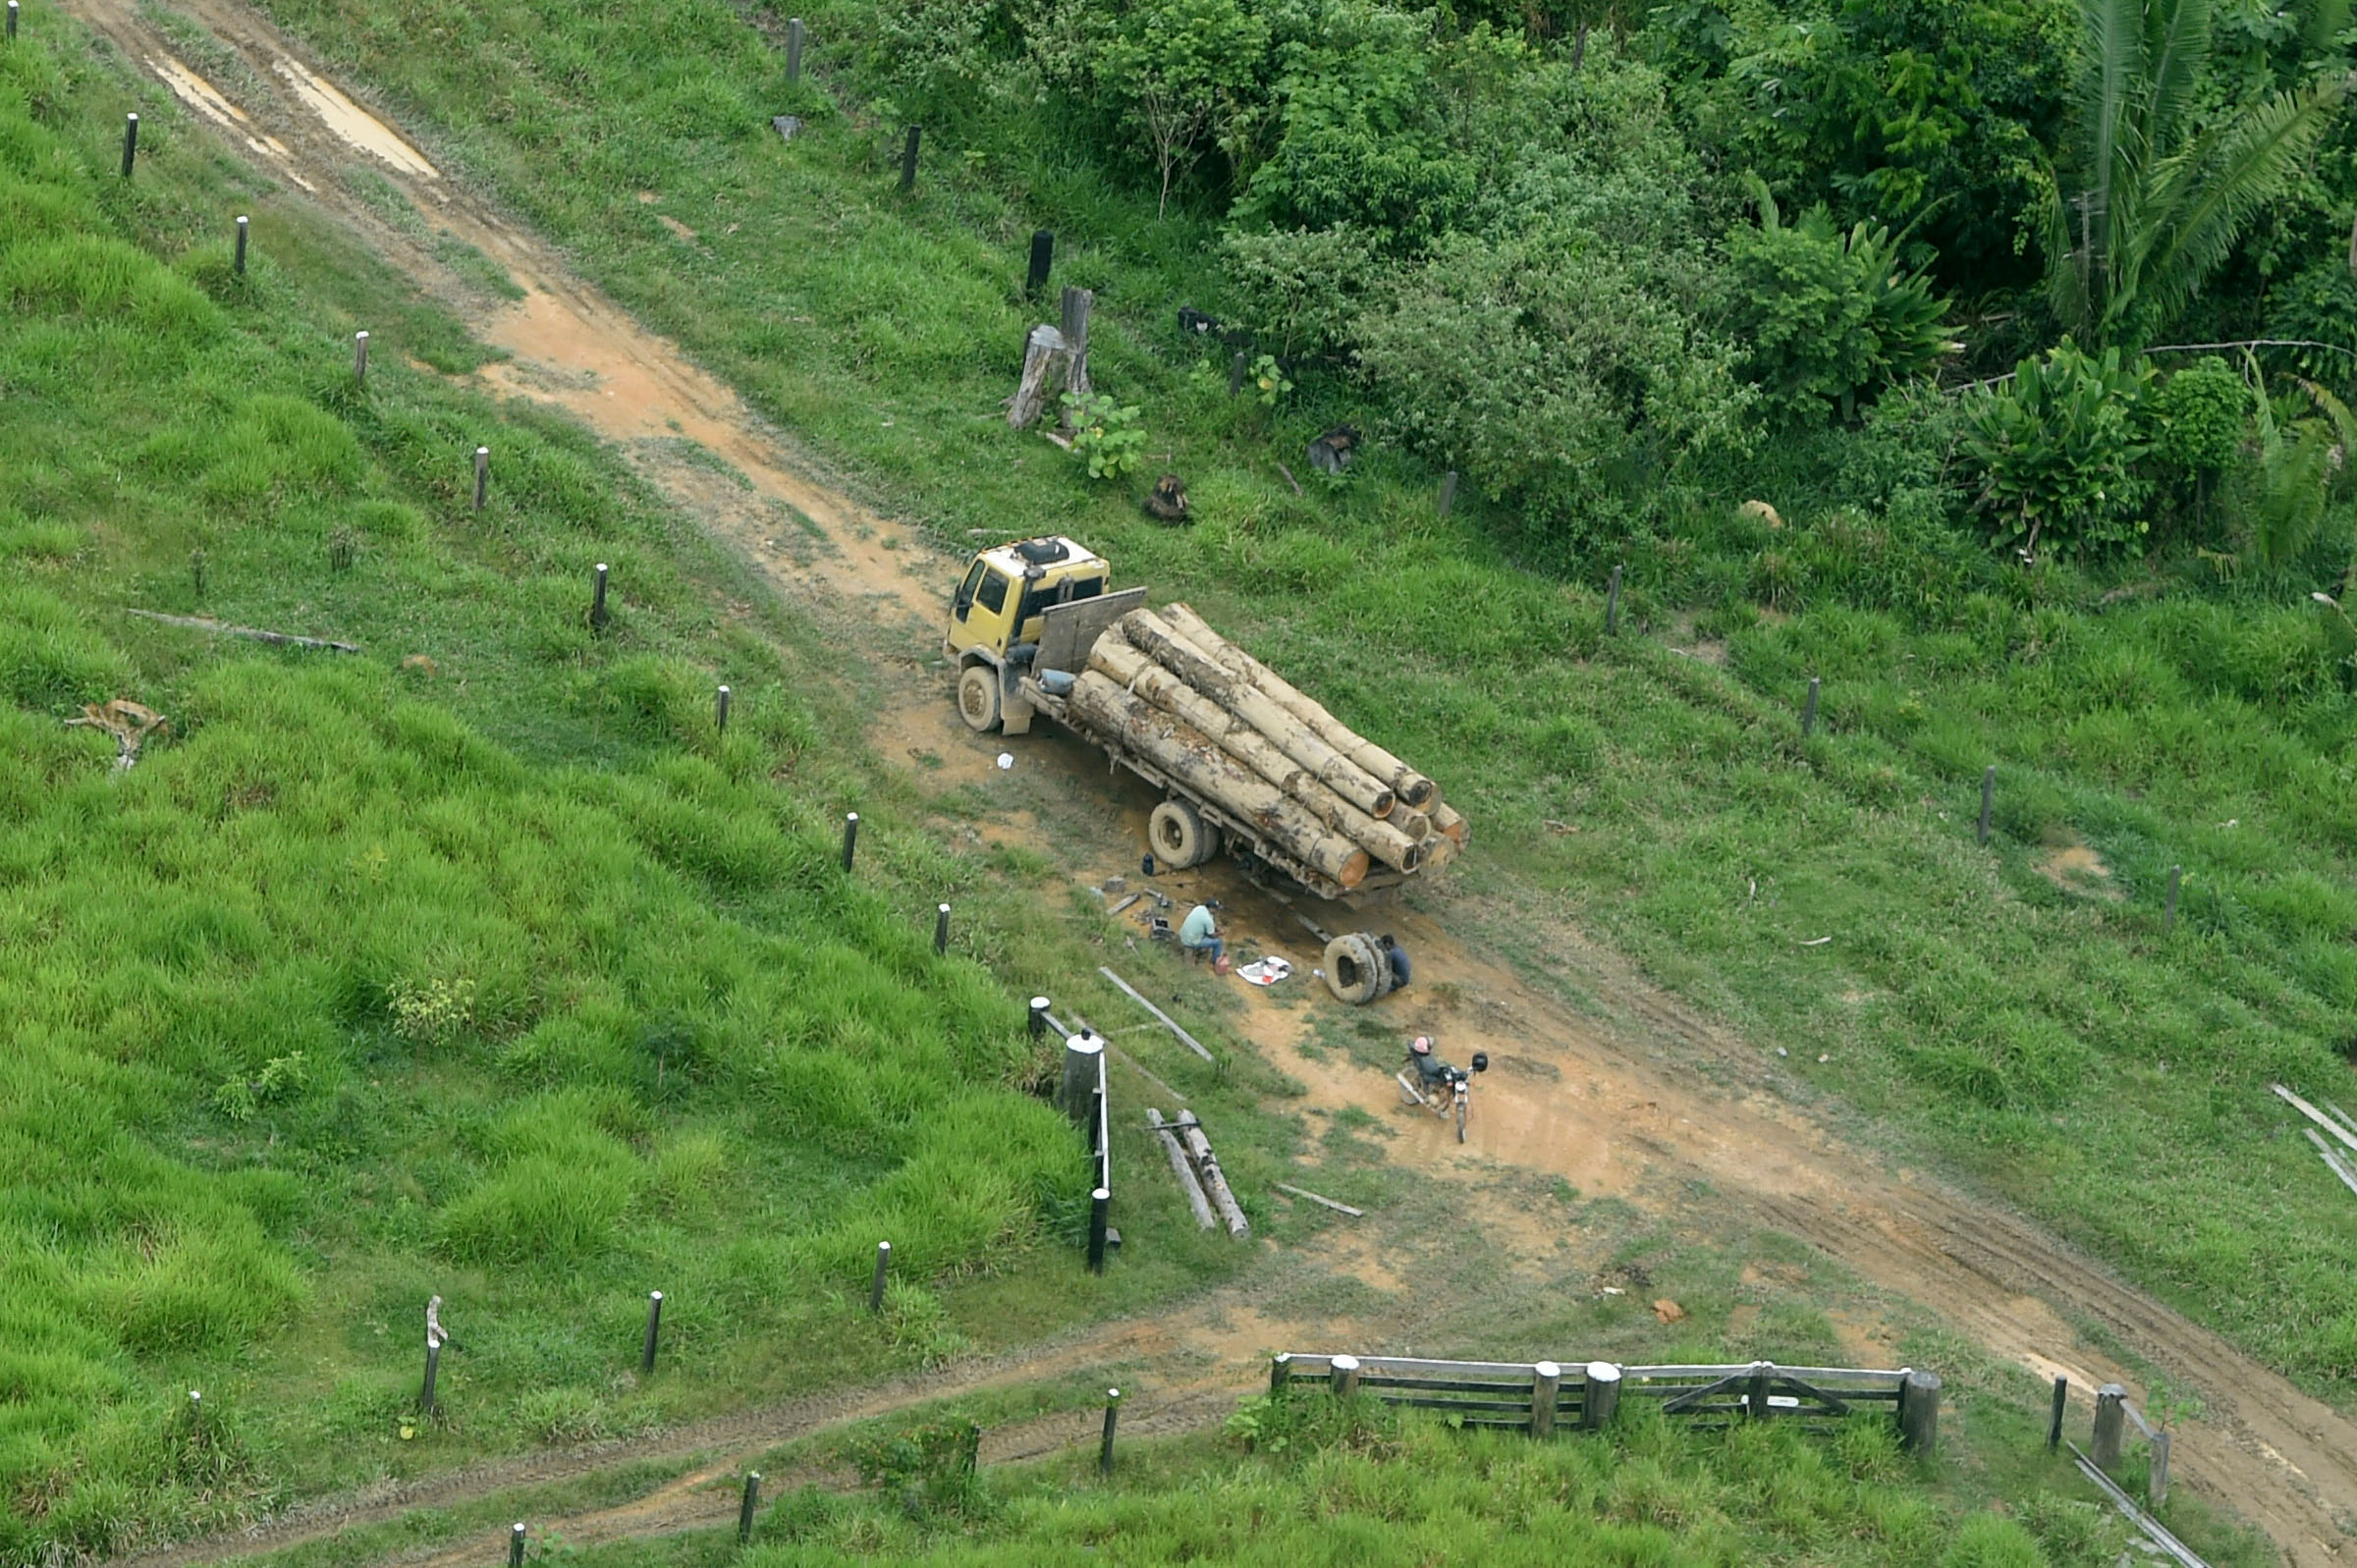 A truck removing logs via a dirt road surrounded by grass and a small patch of visible rainforest.